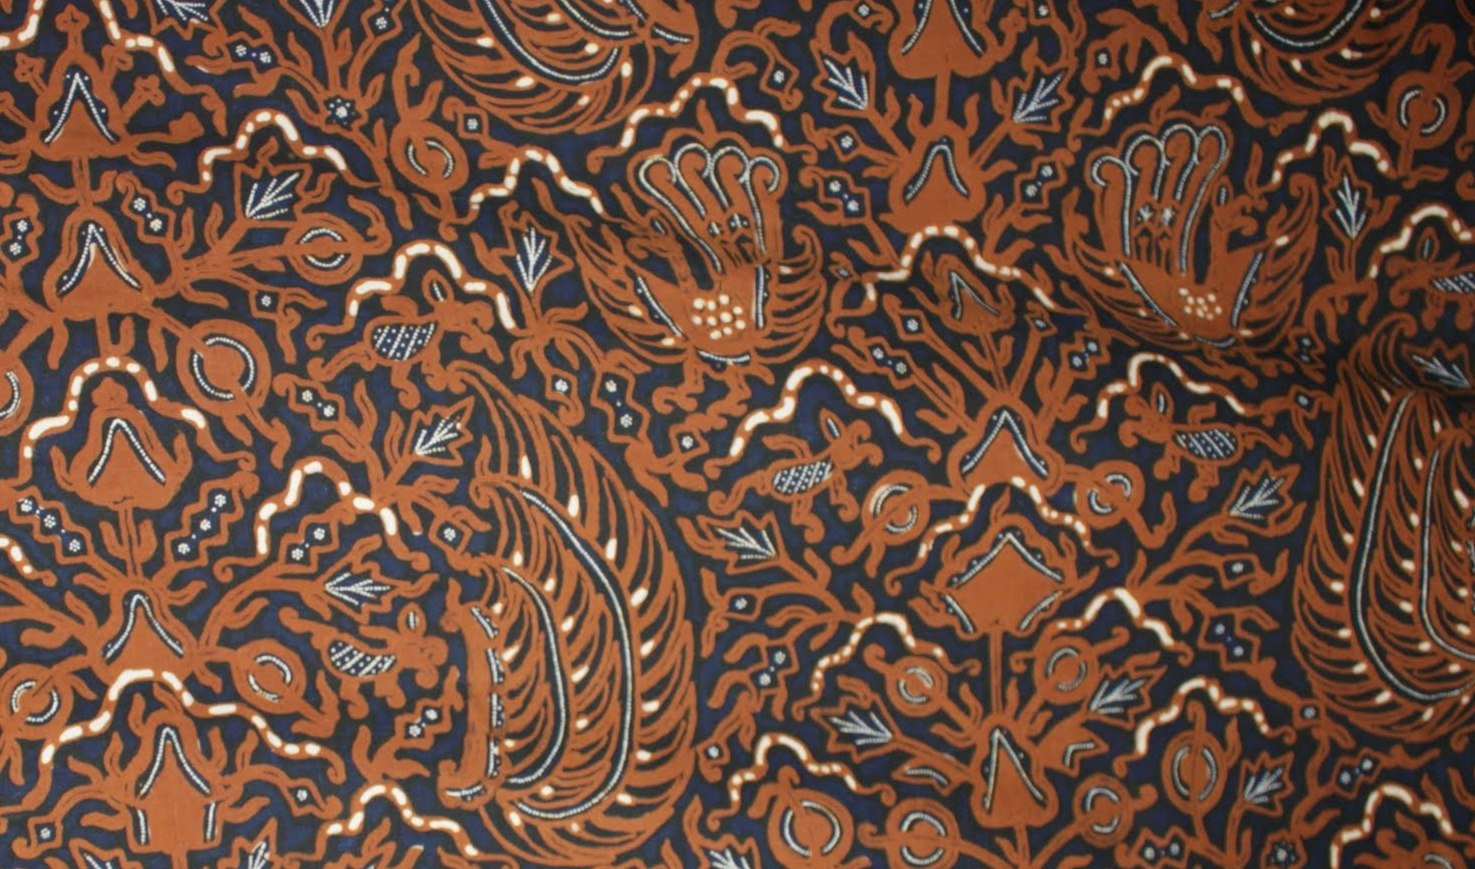 The Forbidden Designs in Batik Yogyakarta